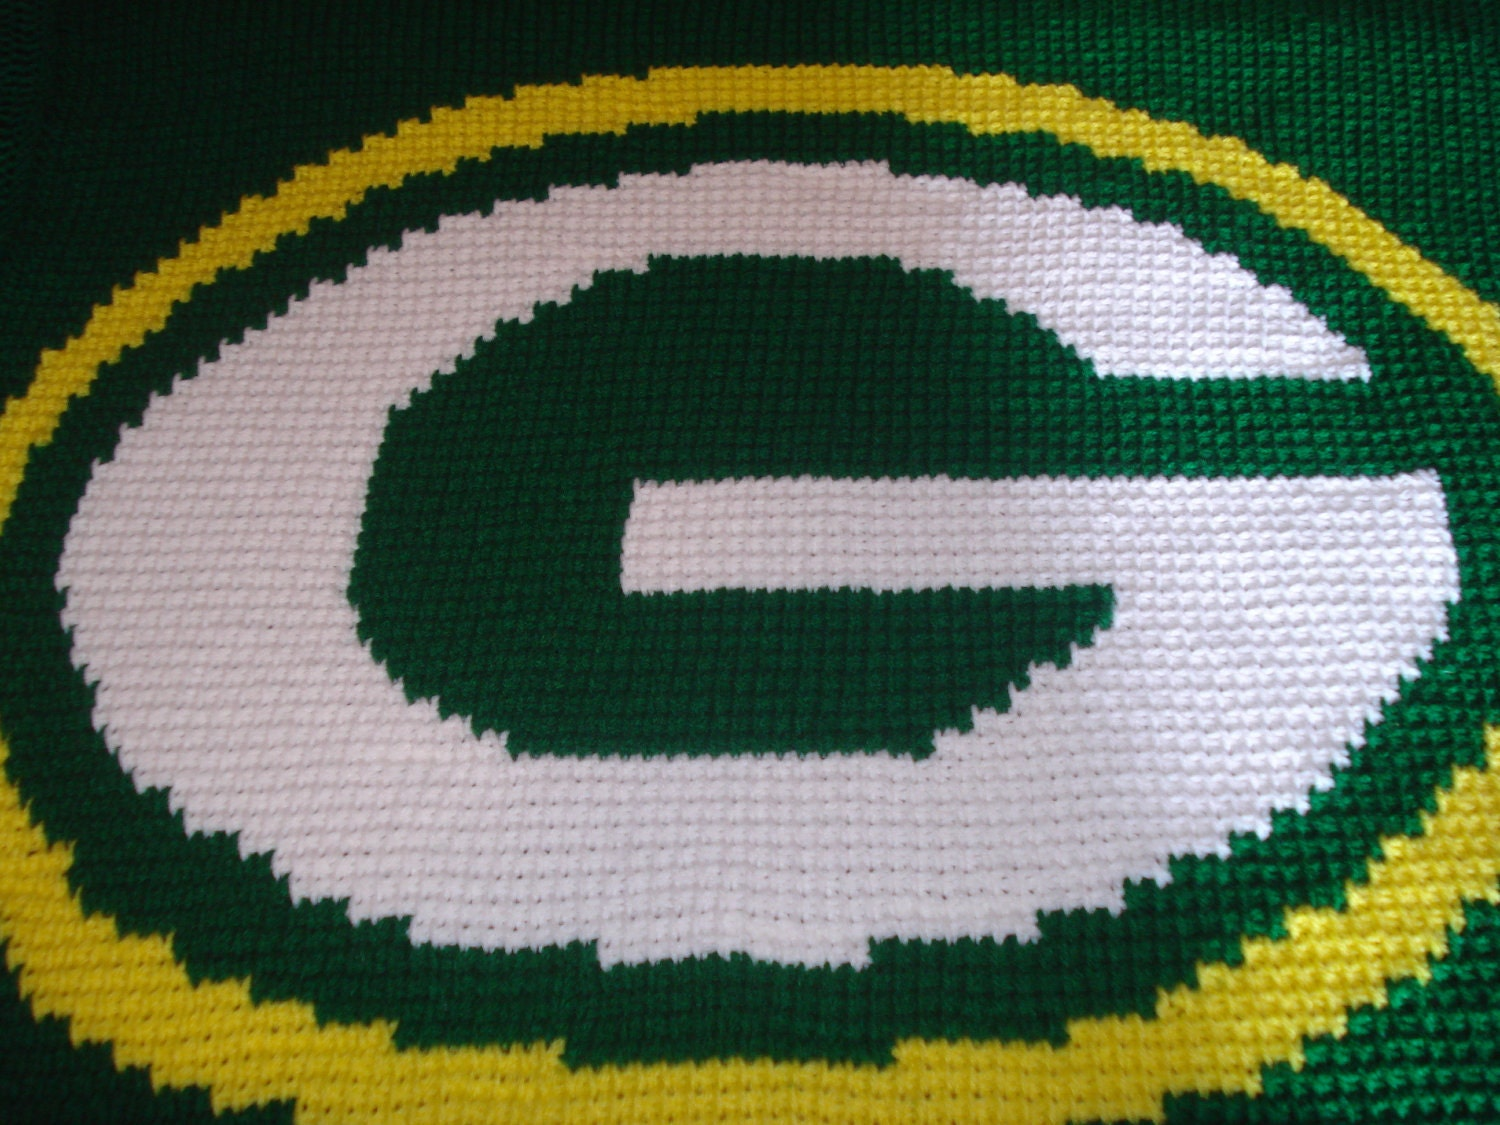 Crochet Pattern Green Bay Packer Afghan : Hand Crocheted Green Bay Packers Logo Blanket 42x45 by ...